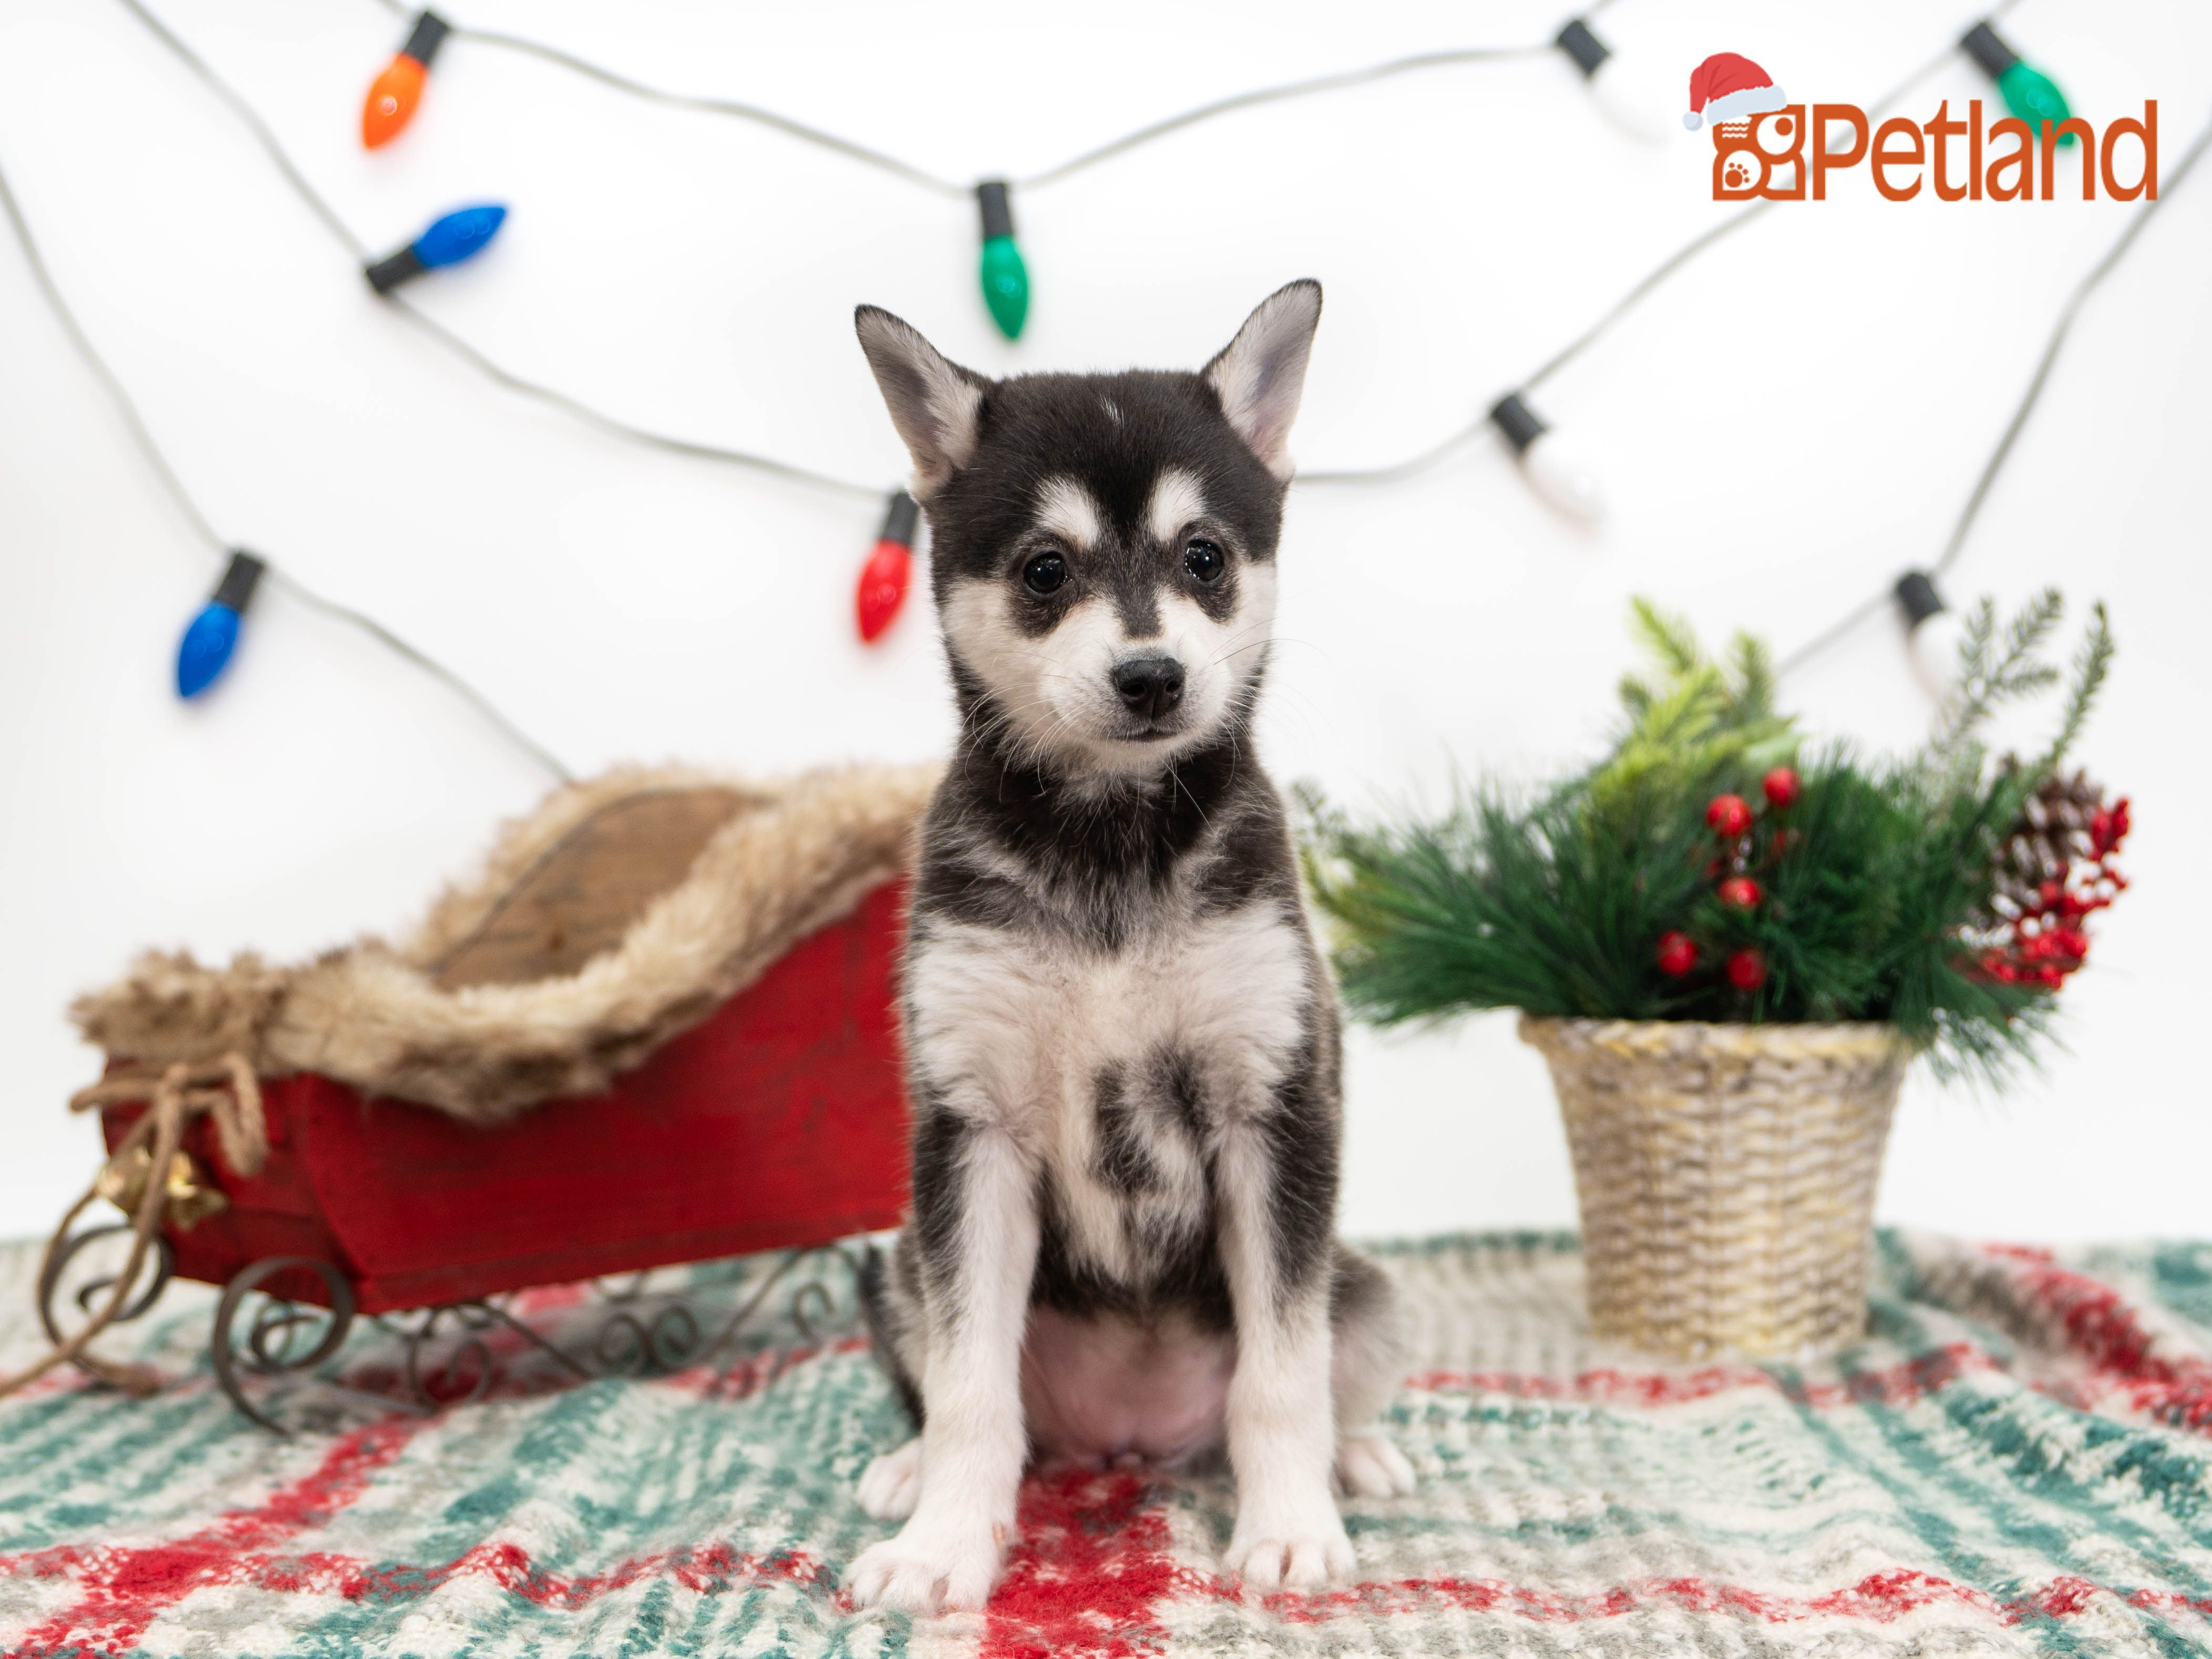 Puppies For Sale (With images) Puppy friends, Puppies, Dogs